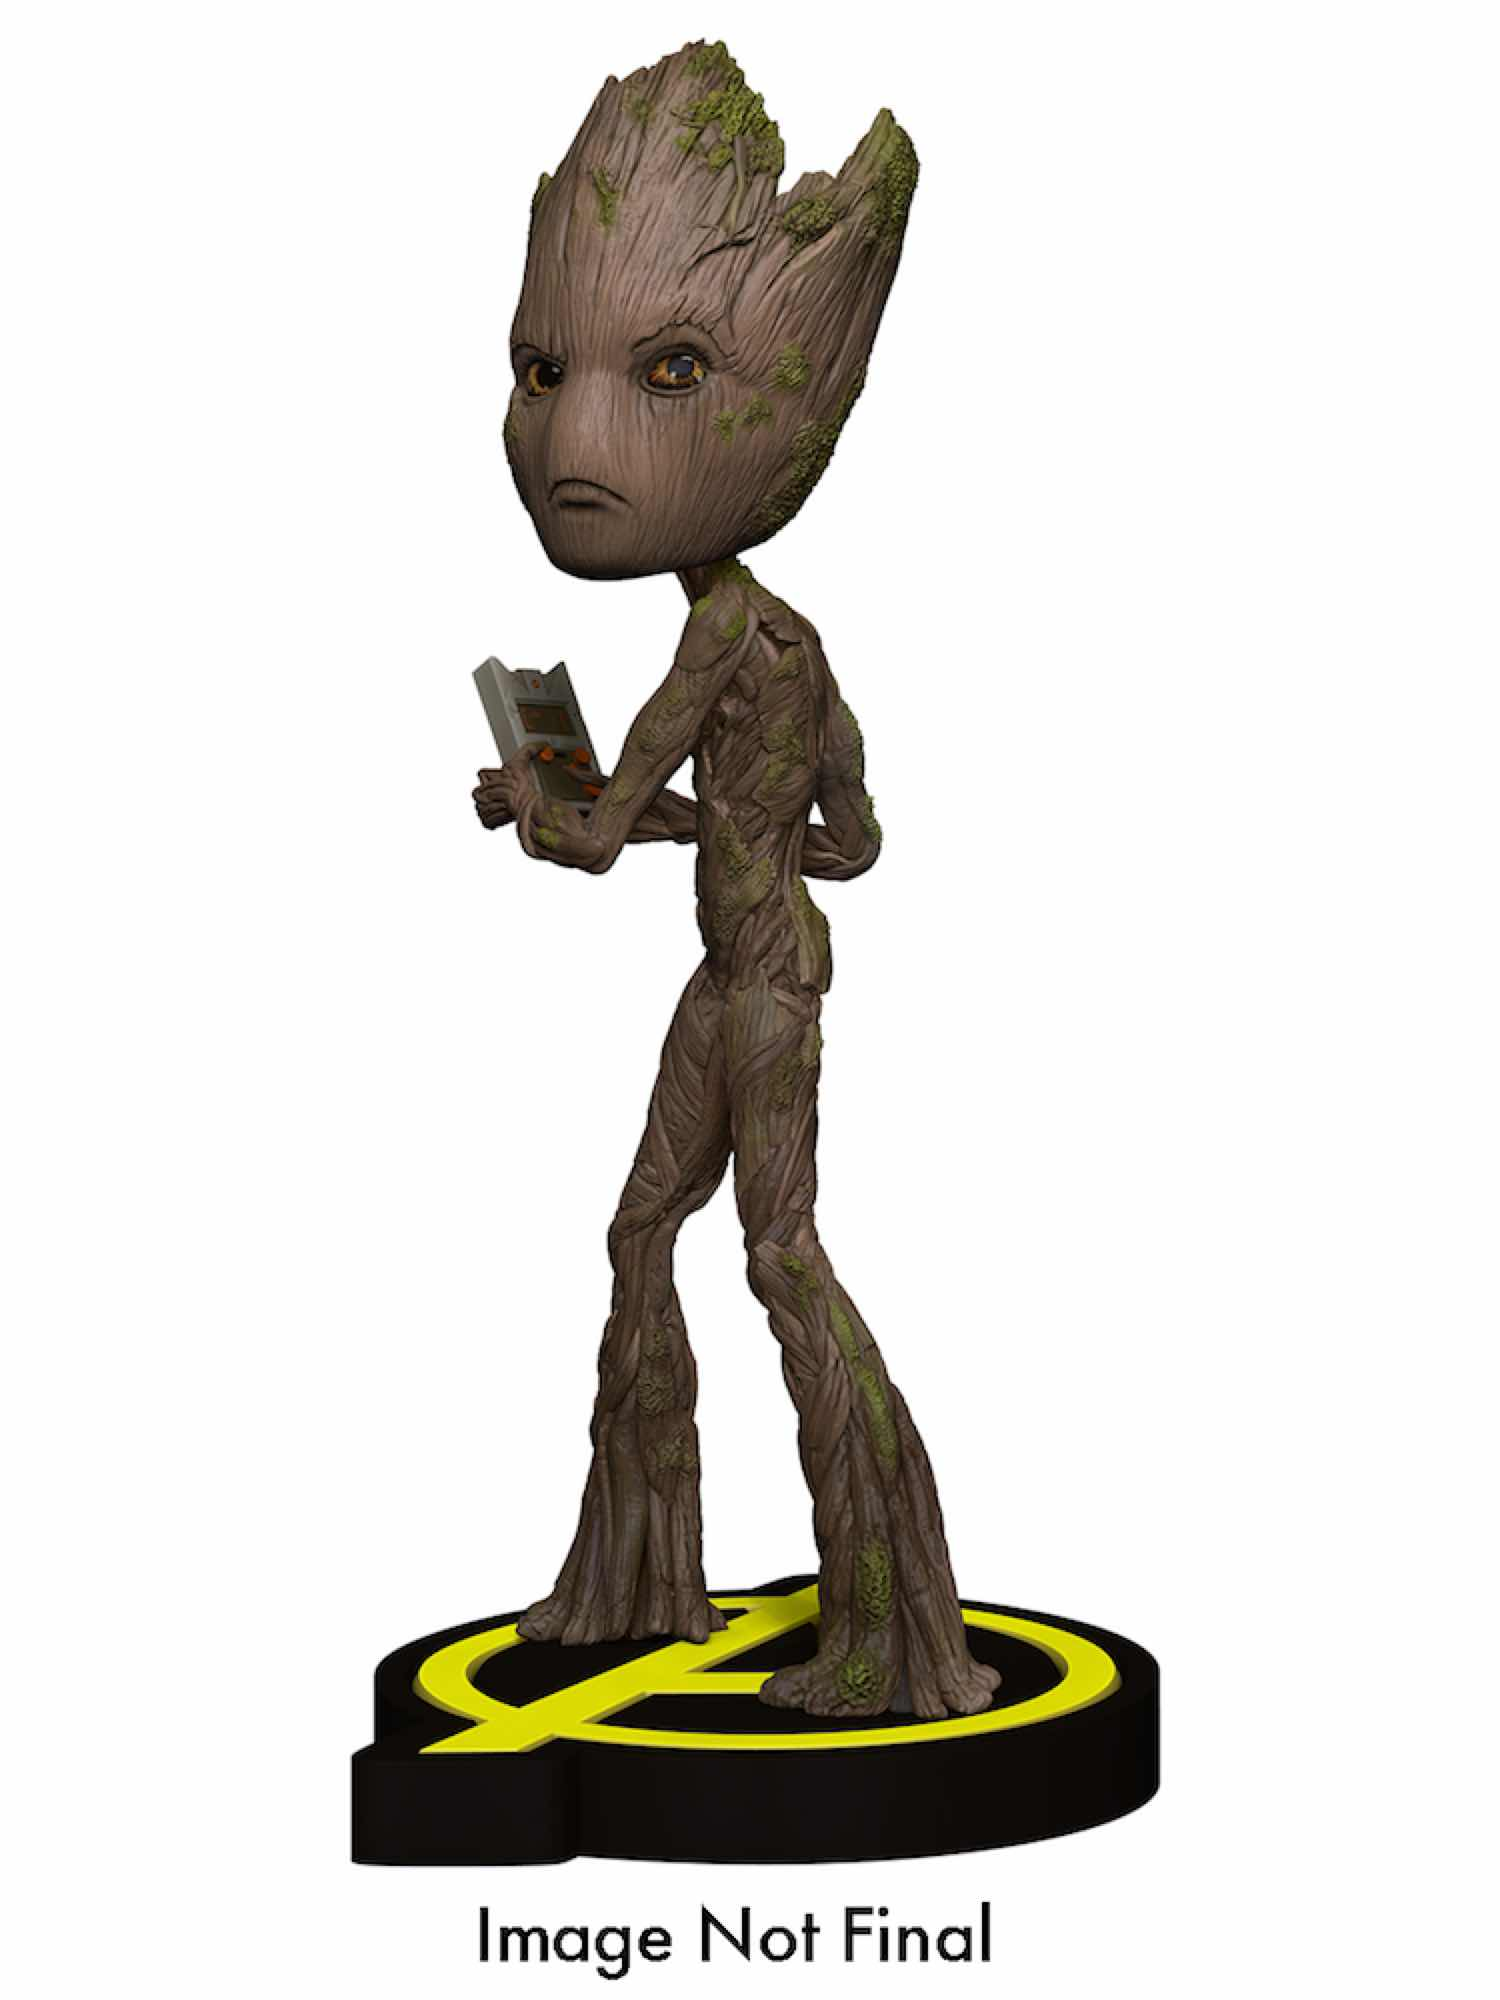 GROOT TEEN HEADKNOCKER FIGURA 20,32 CM MARVEL AVENGERS INFINITY WAR